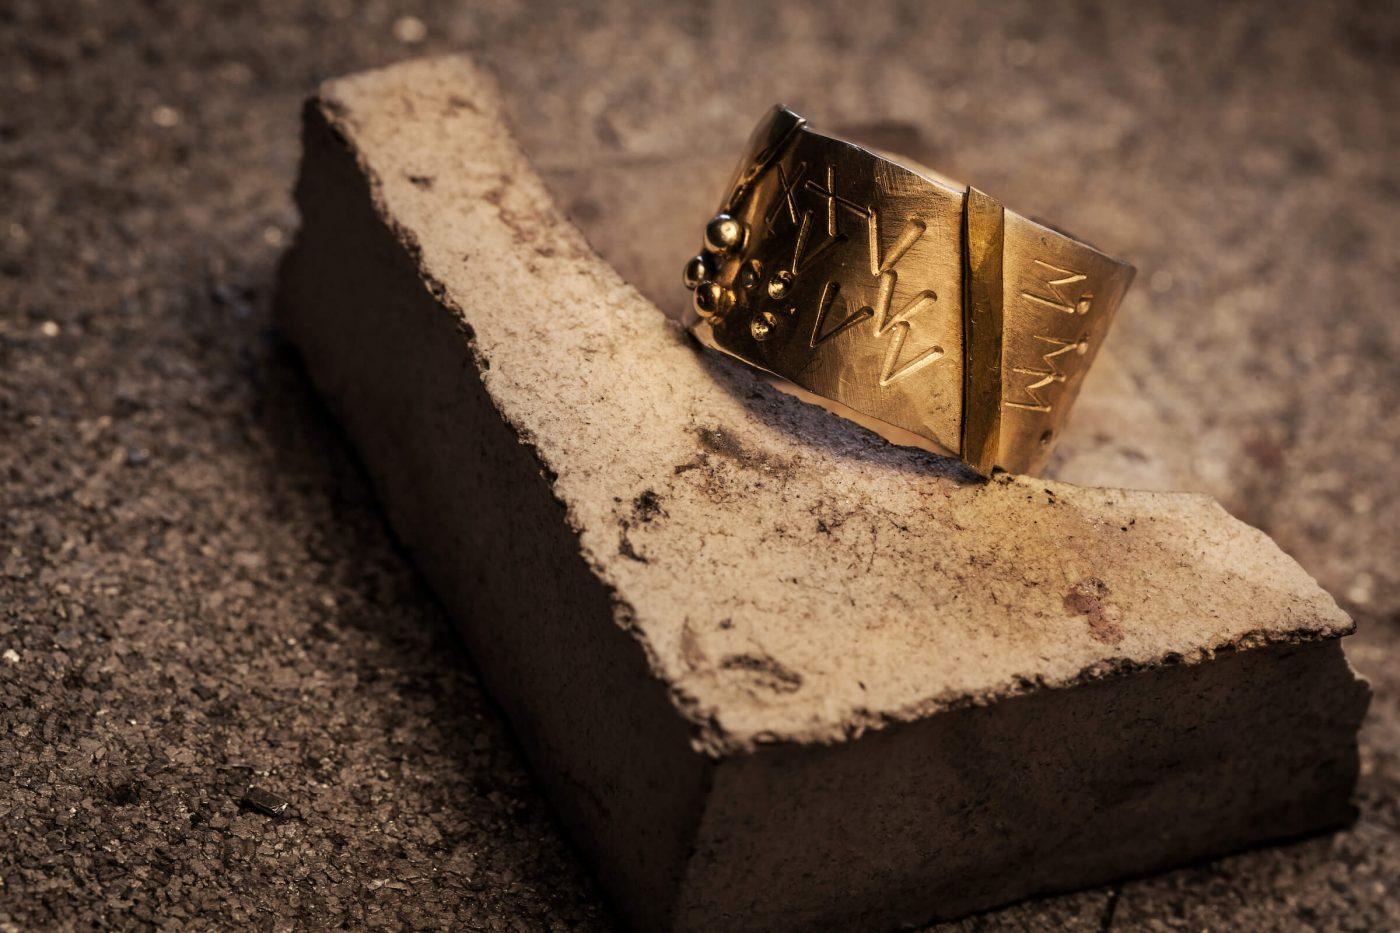 A Kontrast Smykker by Marianne Farup Hansen gold ring design from Sisimiut in Greenland. By Mads Pihl